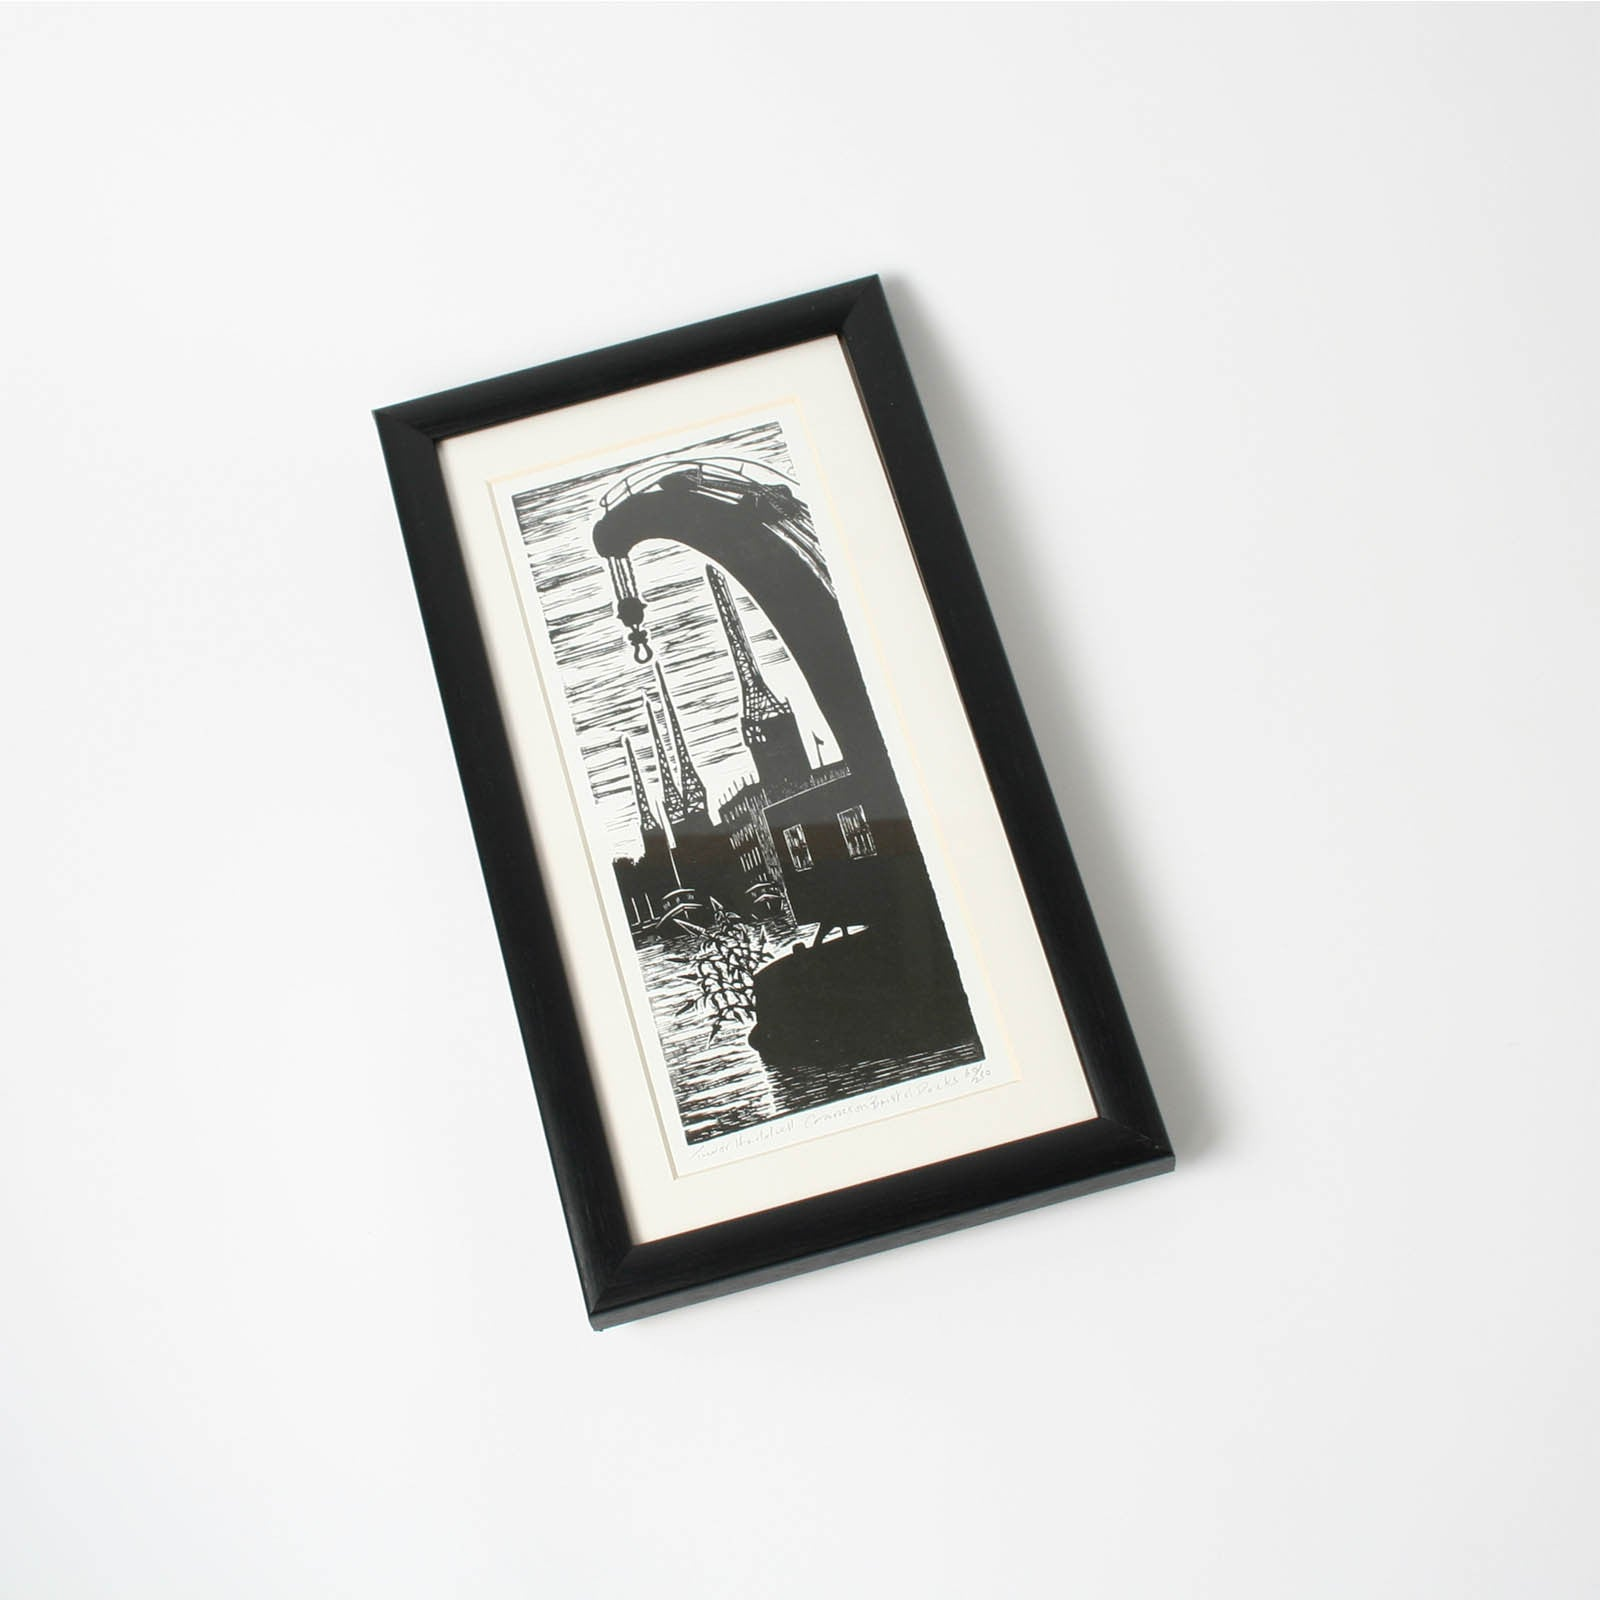 Cranes on Bristol Docks Small Framed Print by Trevor Haddrell